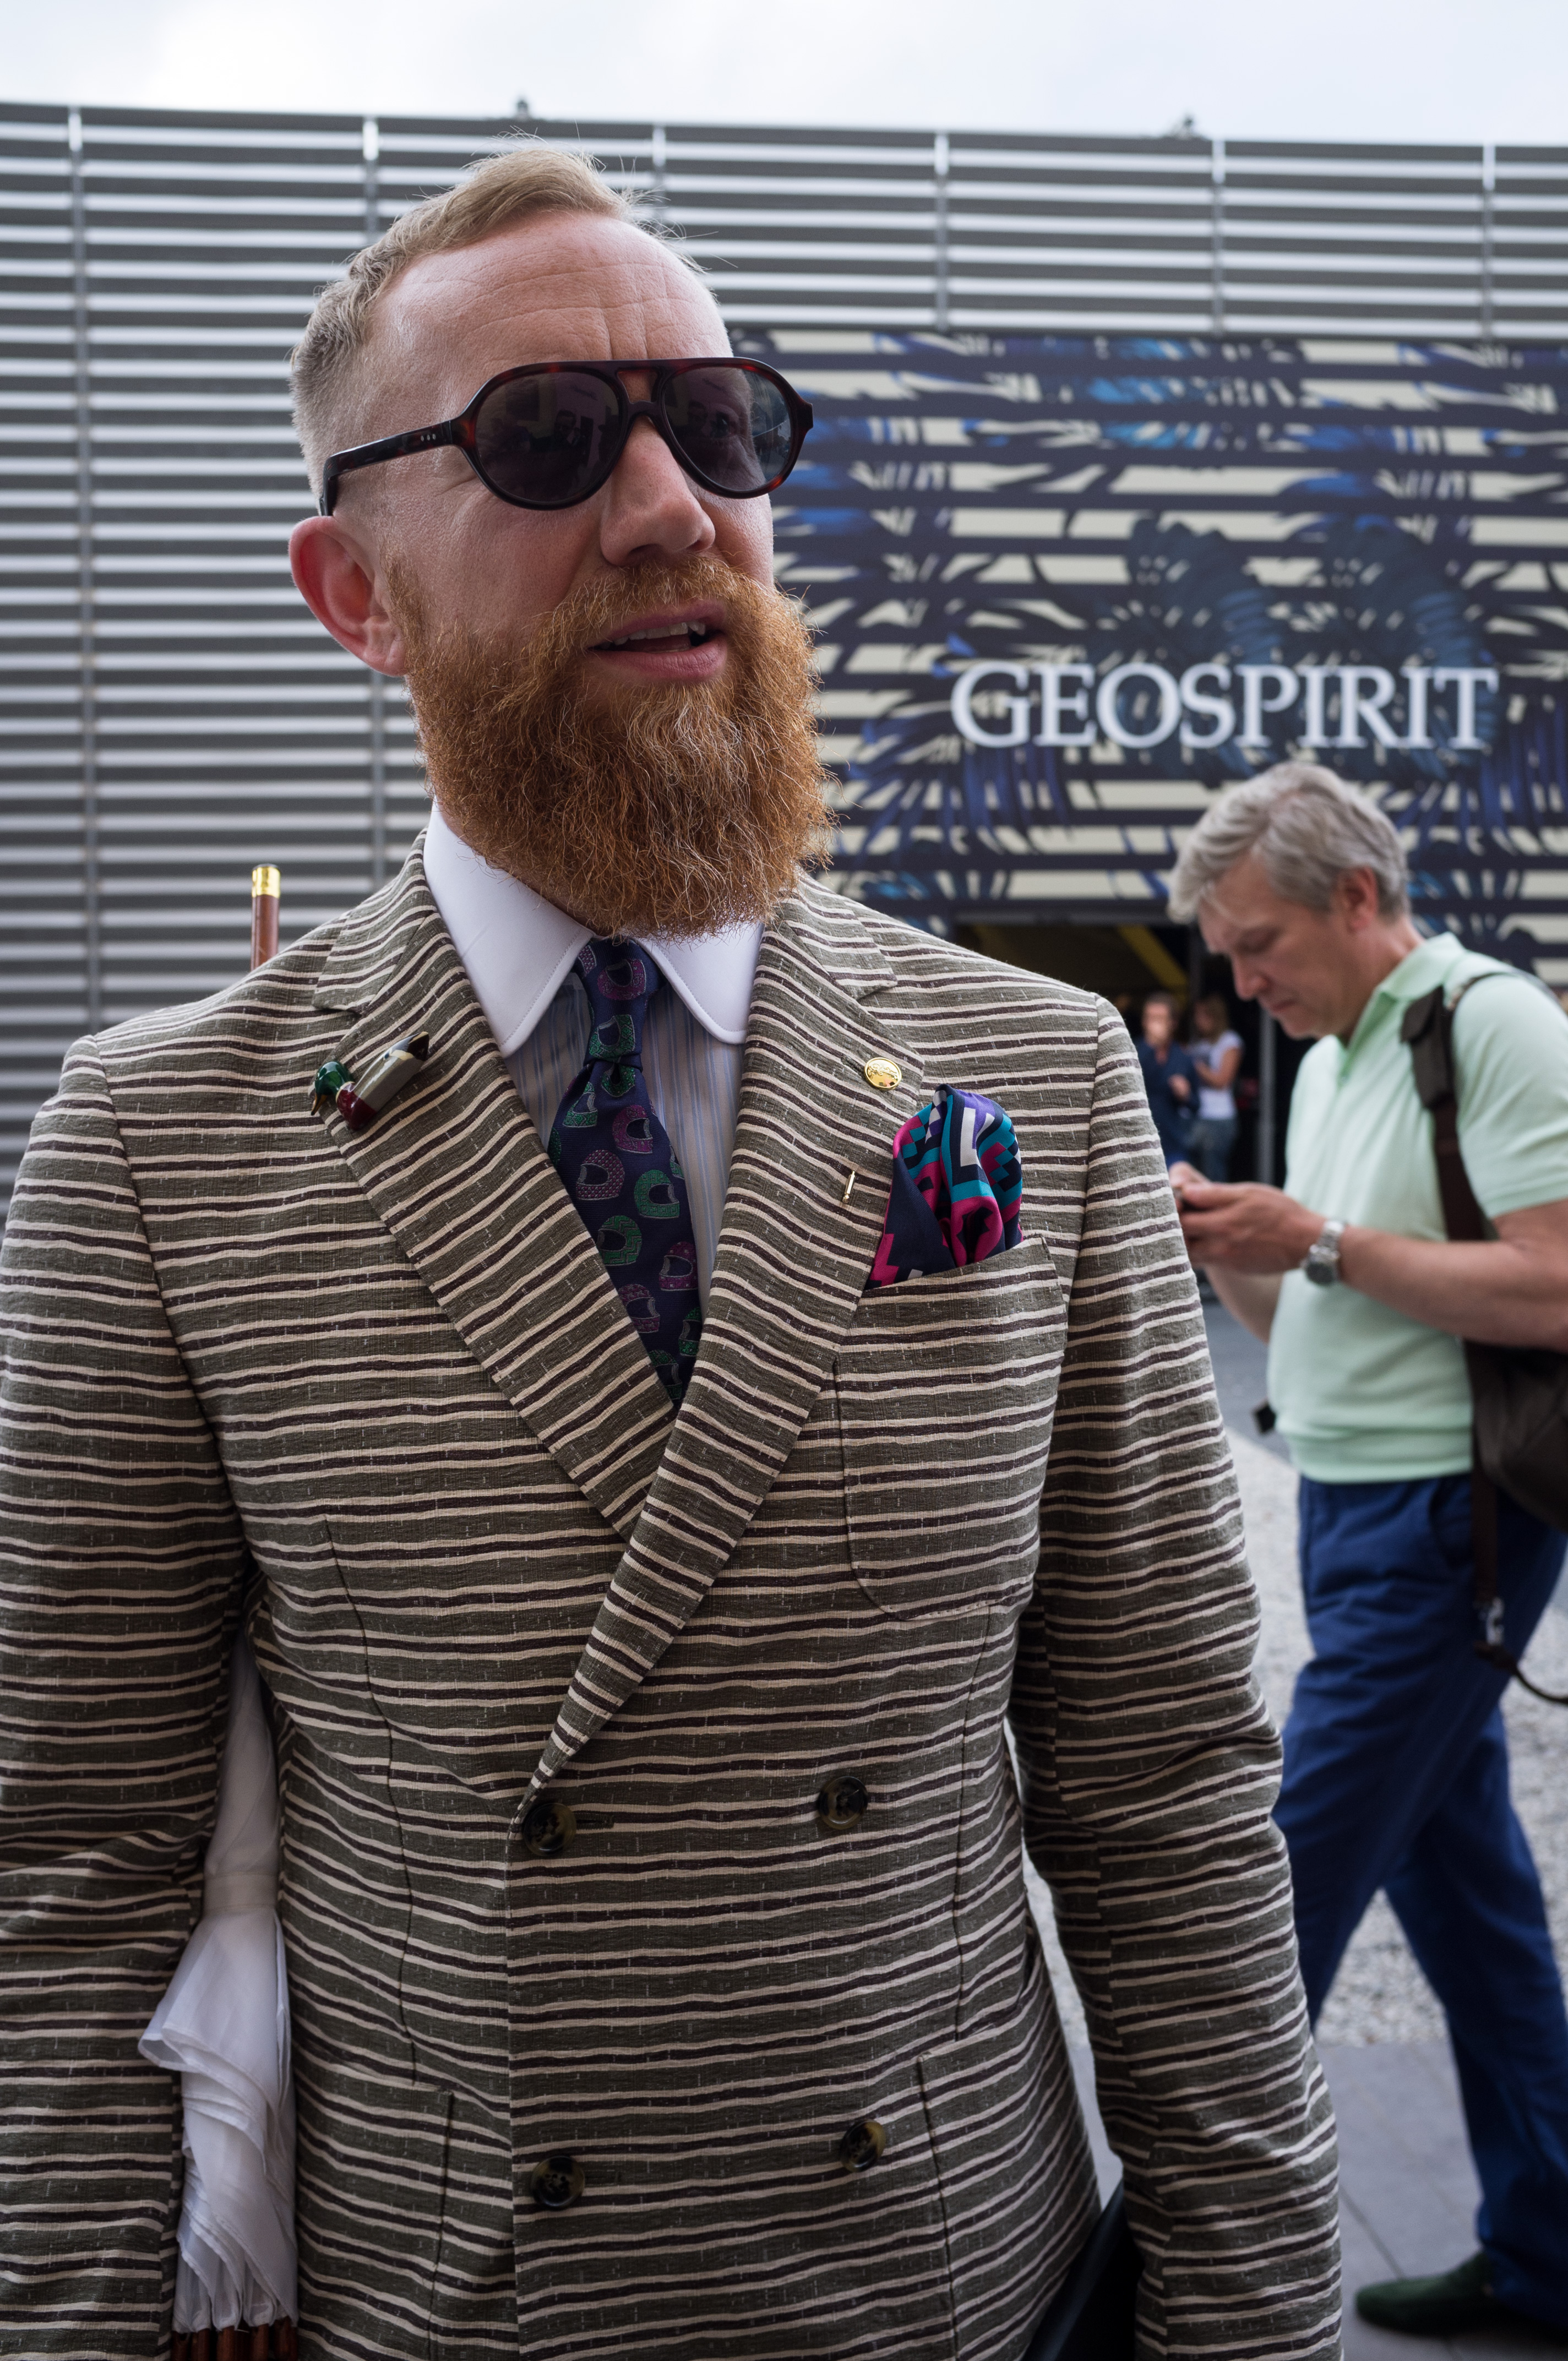 LA Guy's photos in Pitti Uomo 90 - Day 1